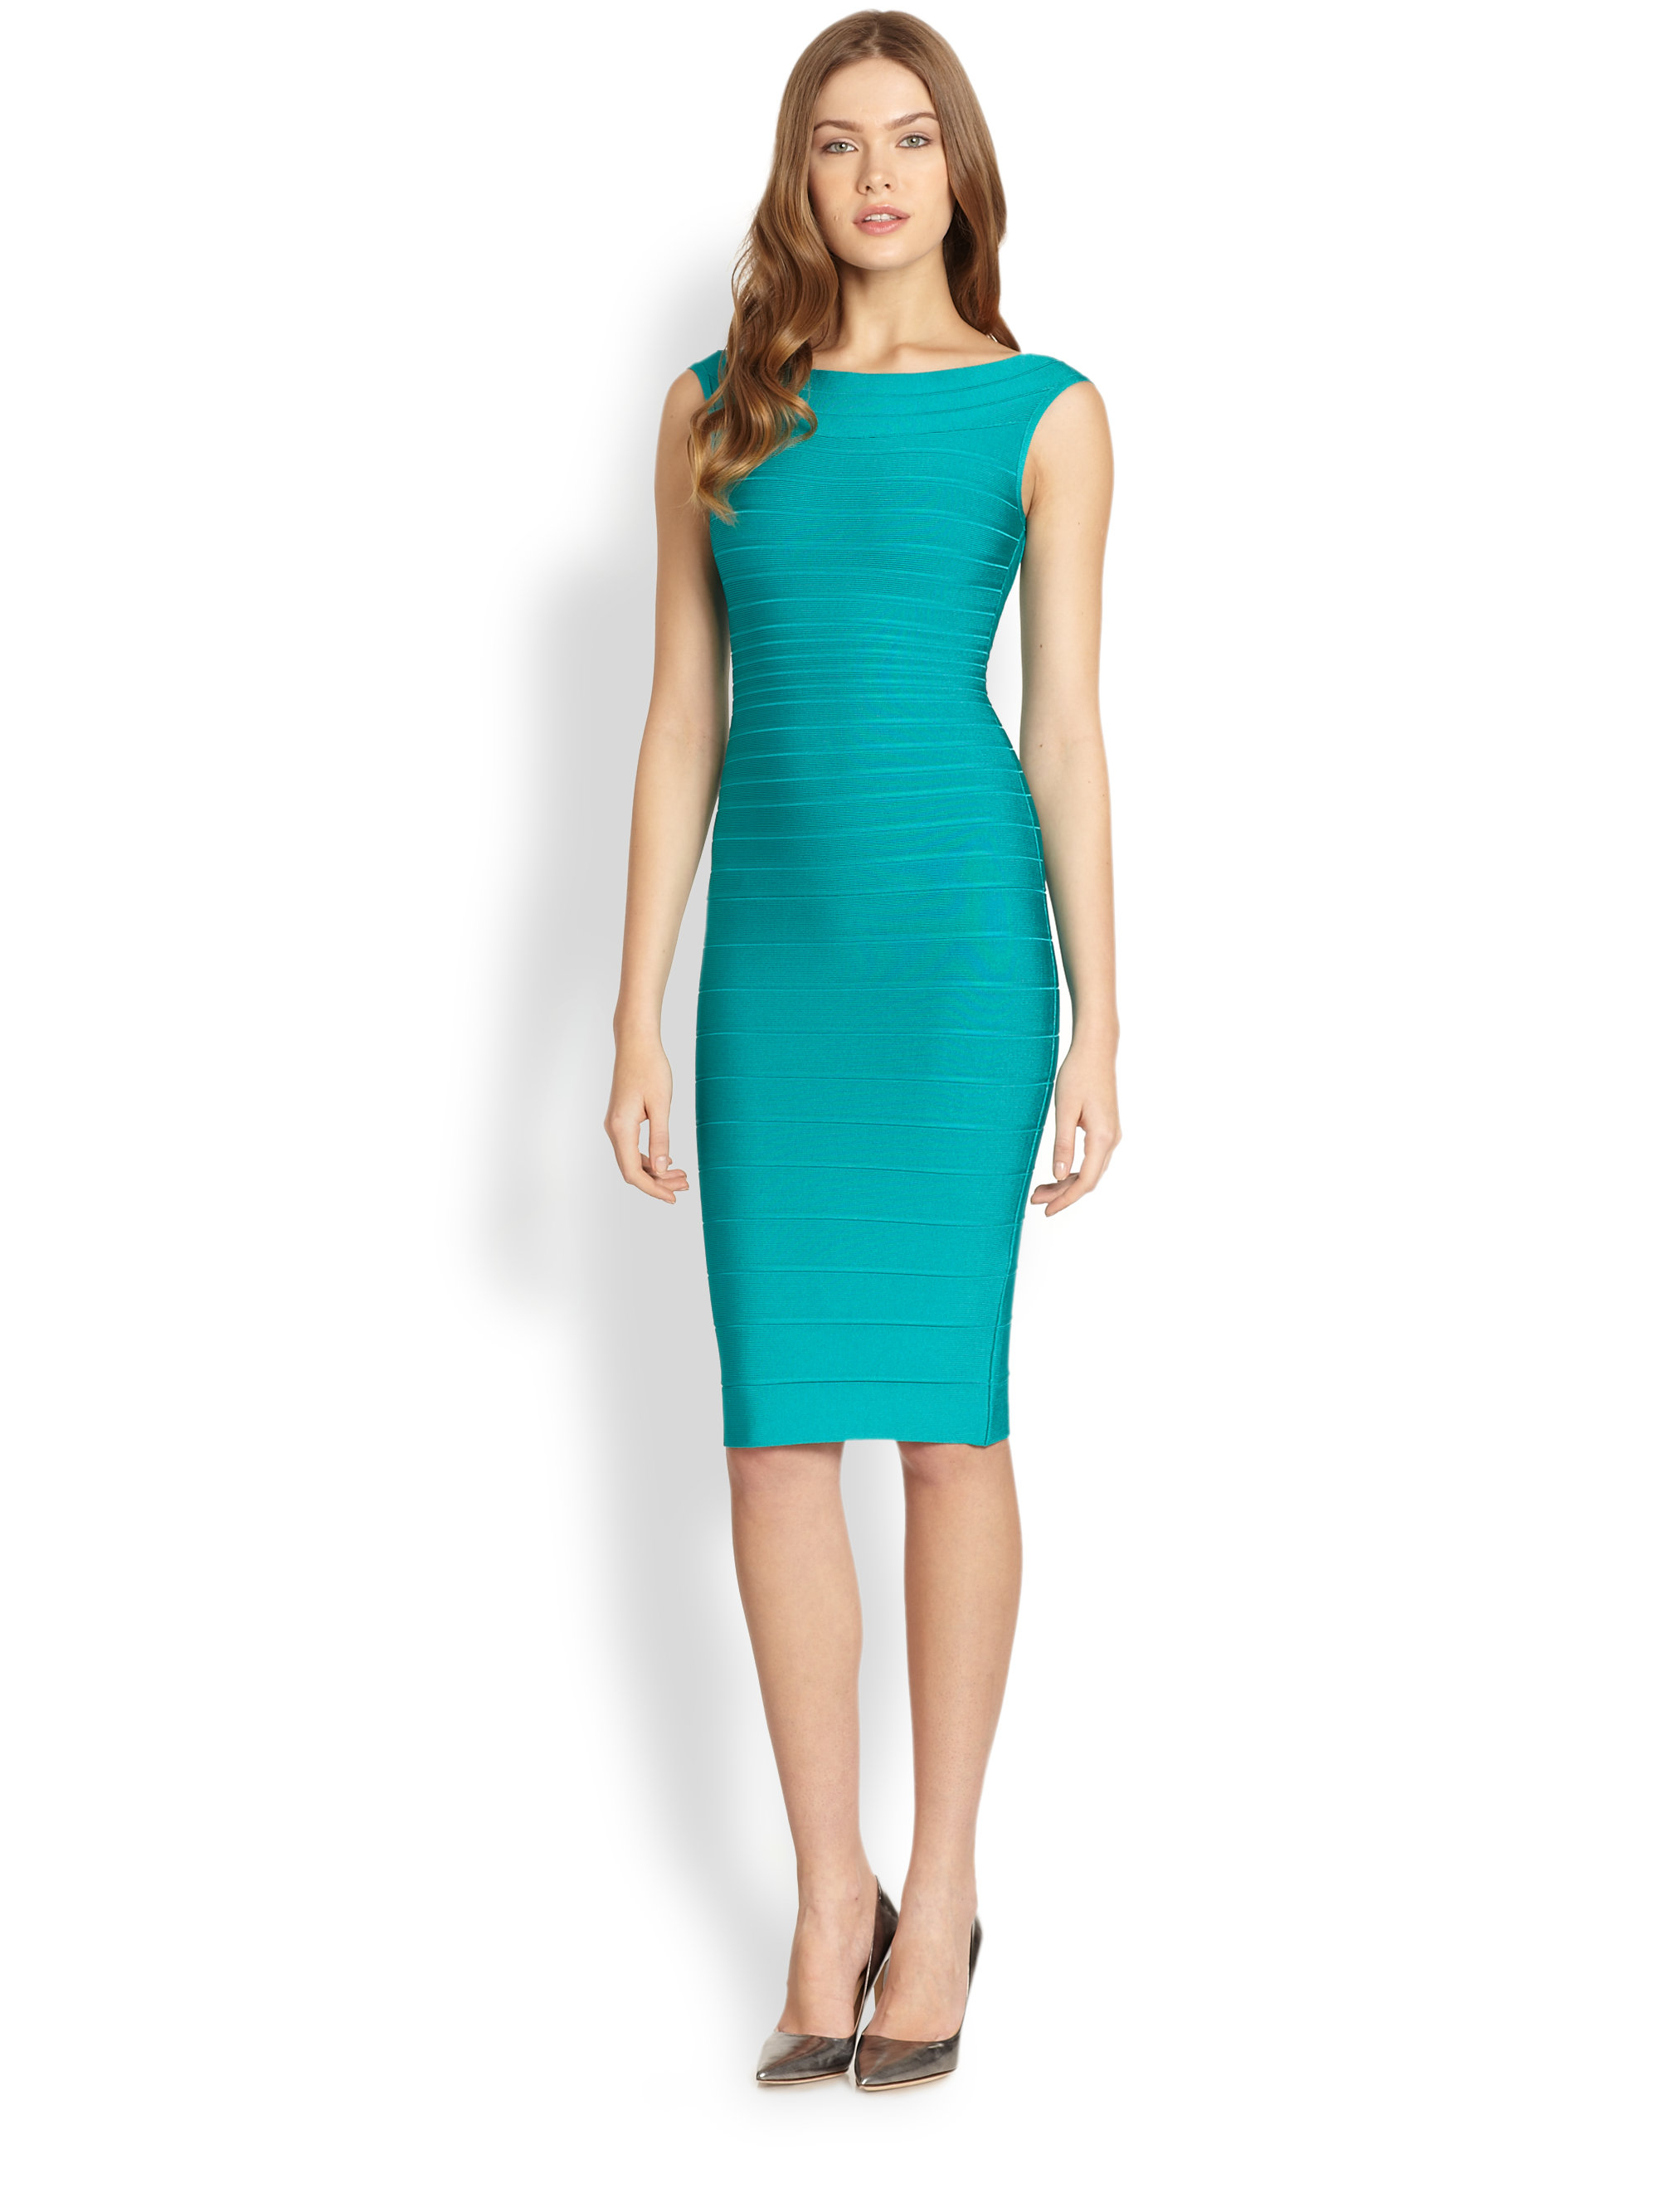 Saks Fifth Avenue Online Shopping